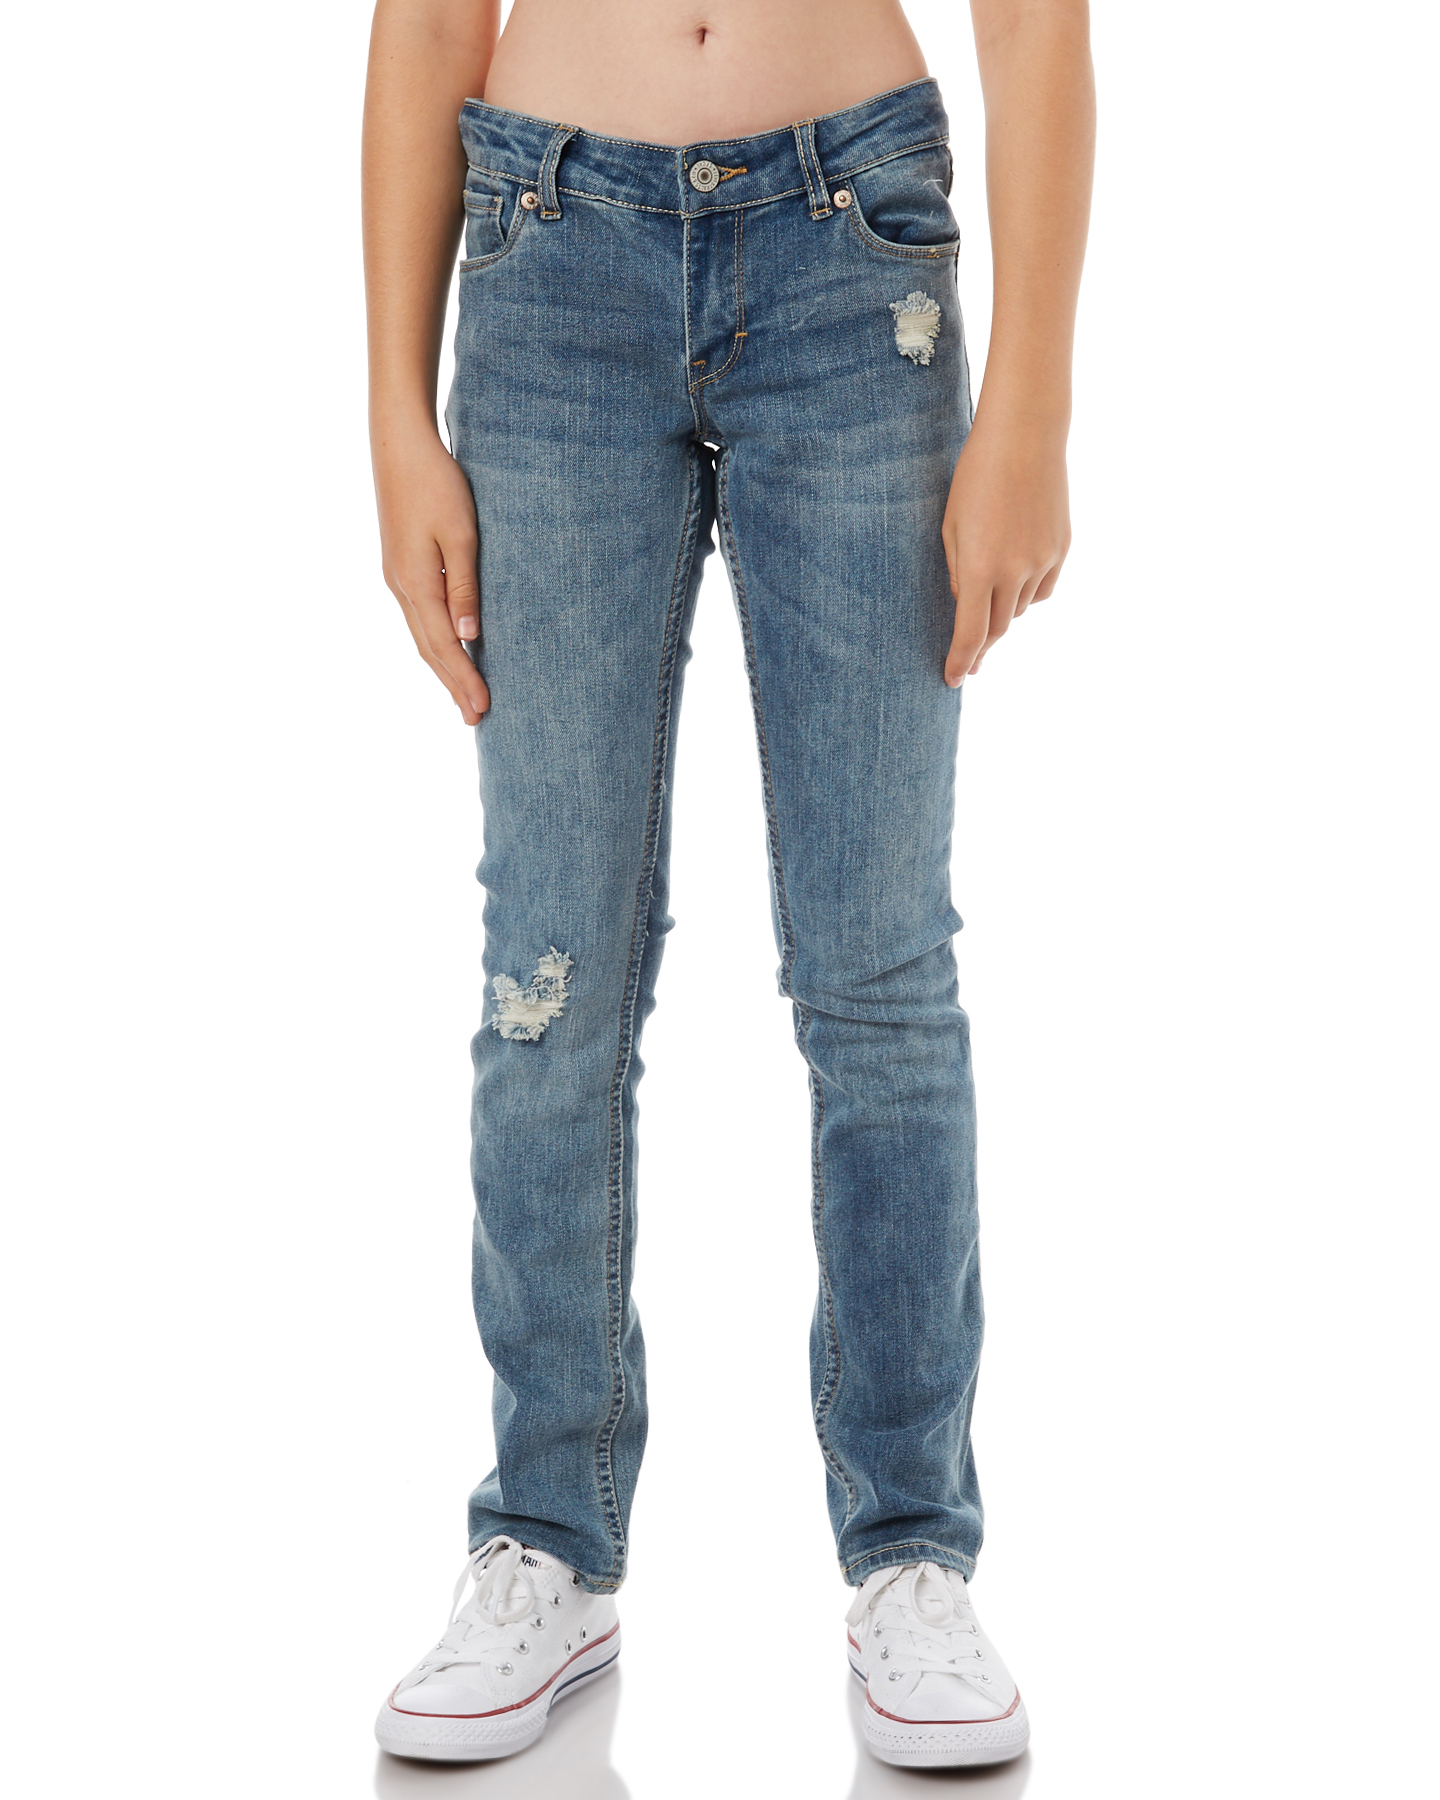 Jeans levis for boys girls